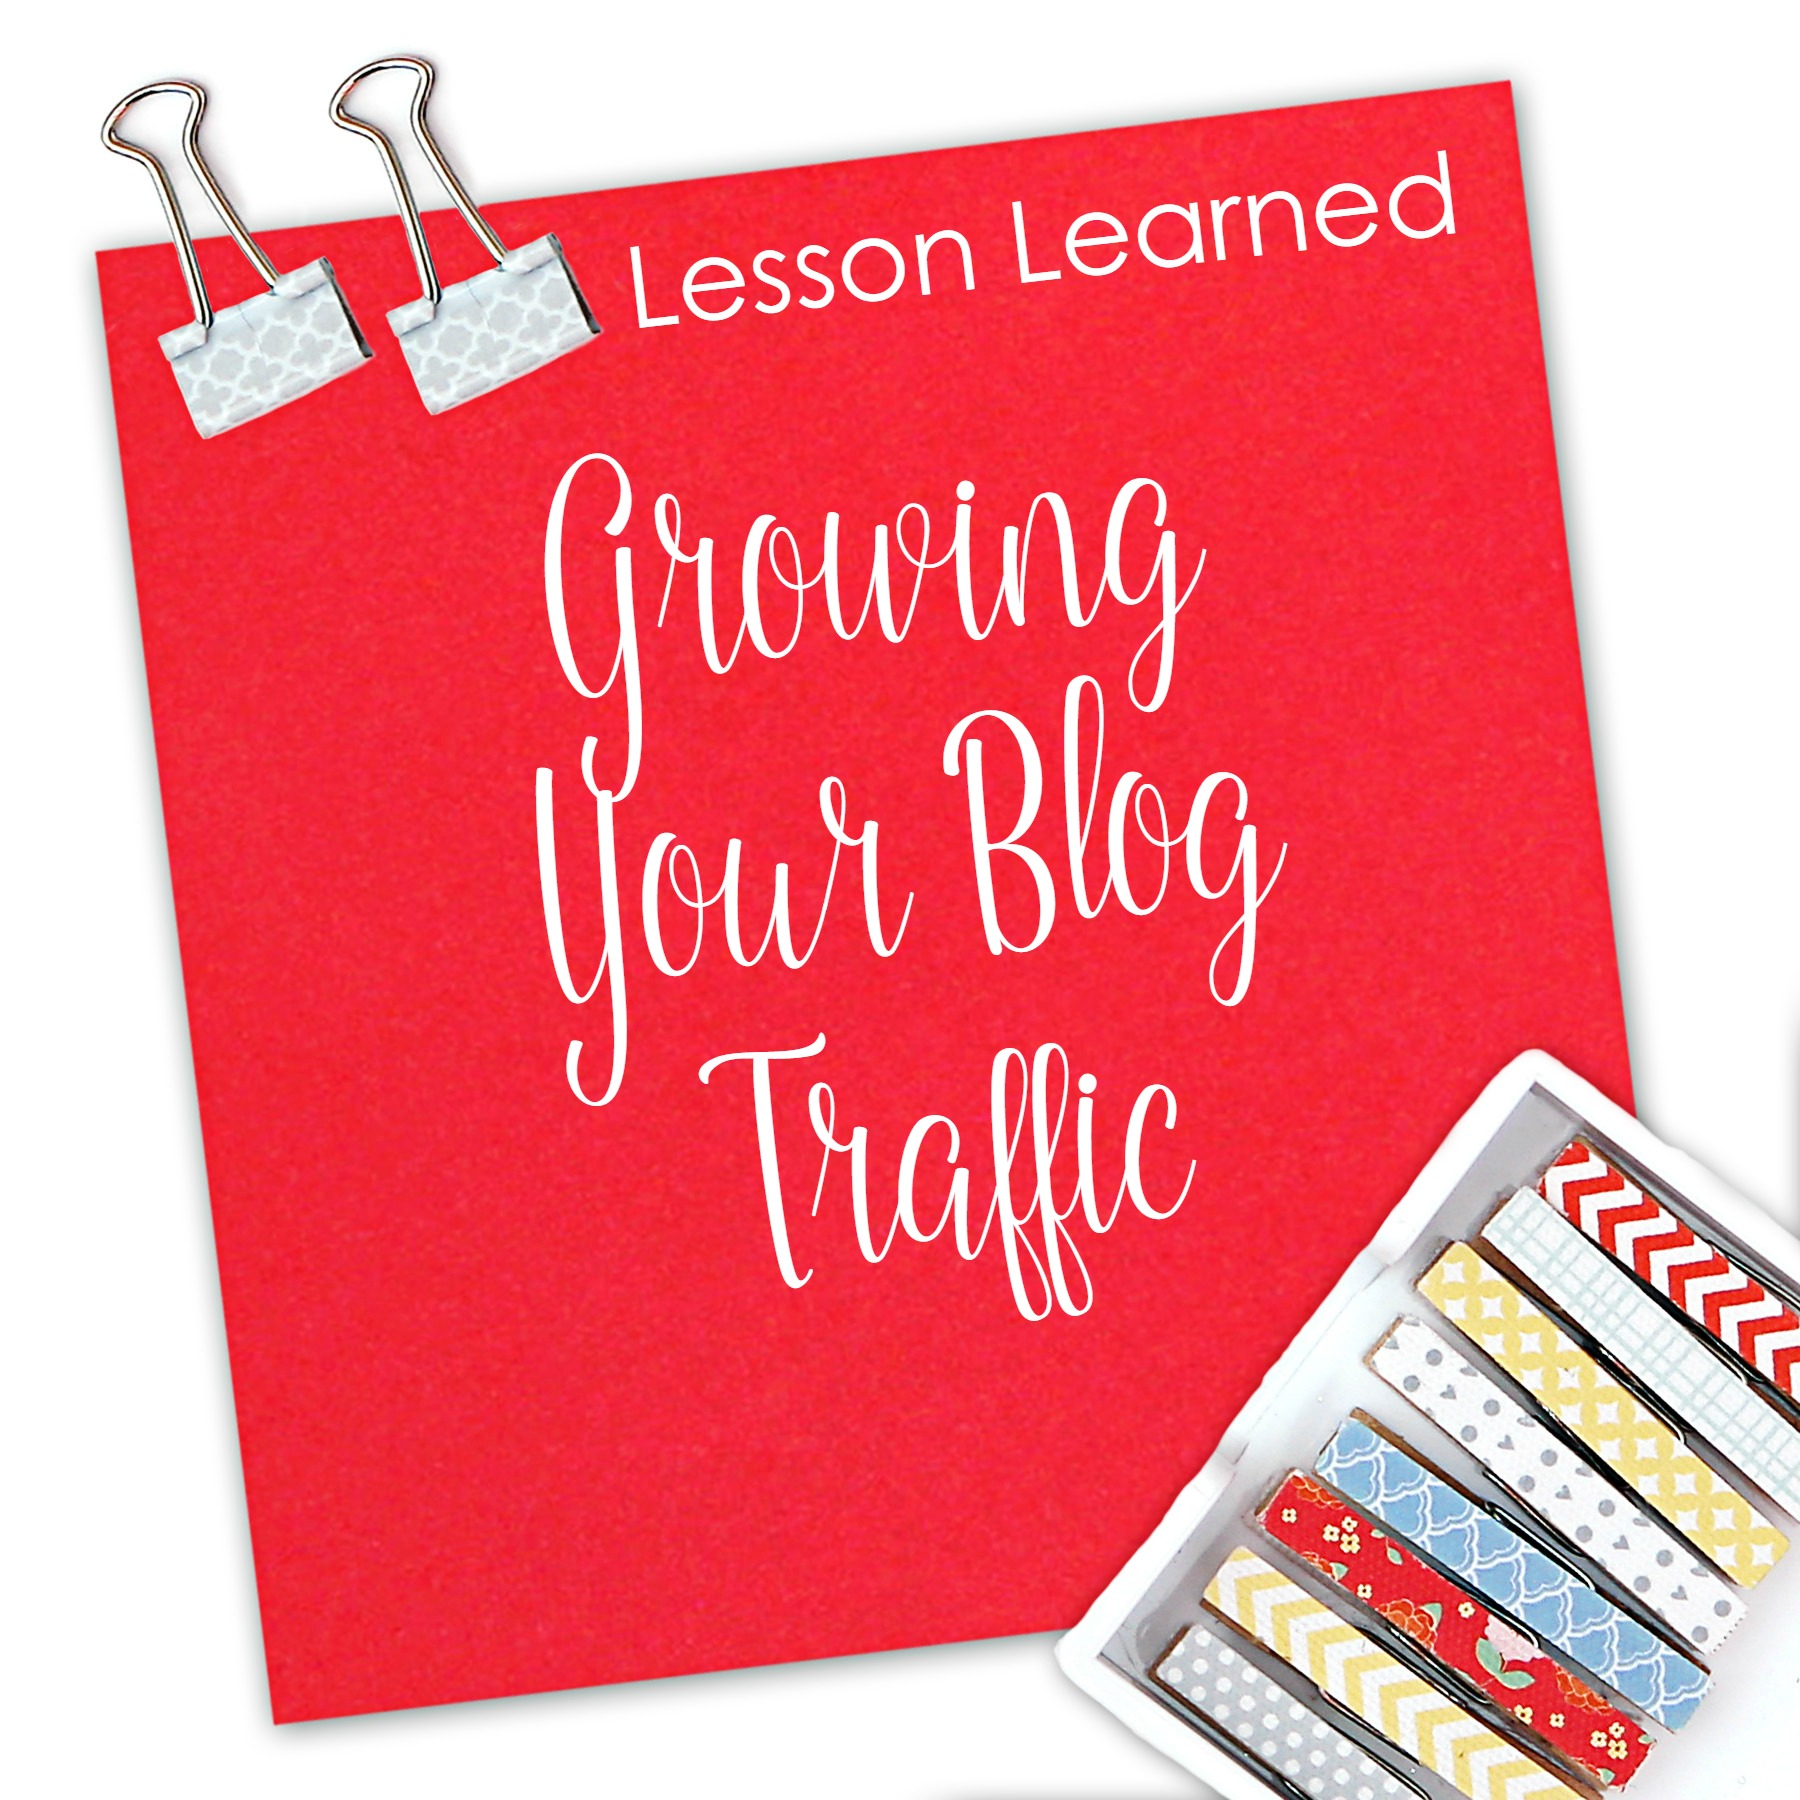 Selecting the right strategies for my blog from this ebook doubled my blog traffic in one month. CRAZY!!!